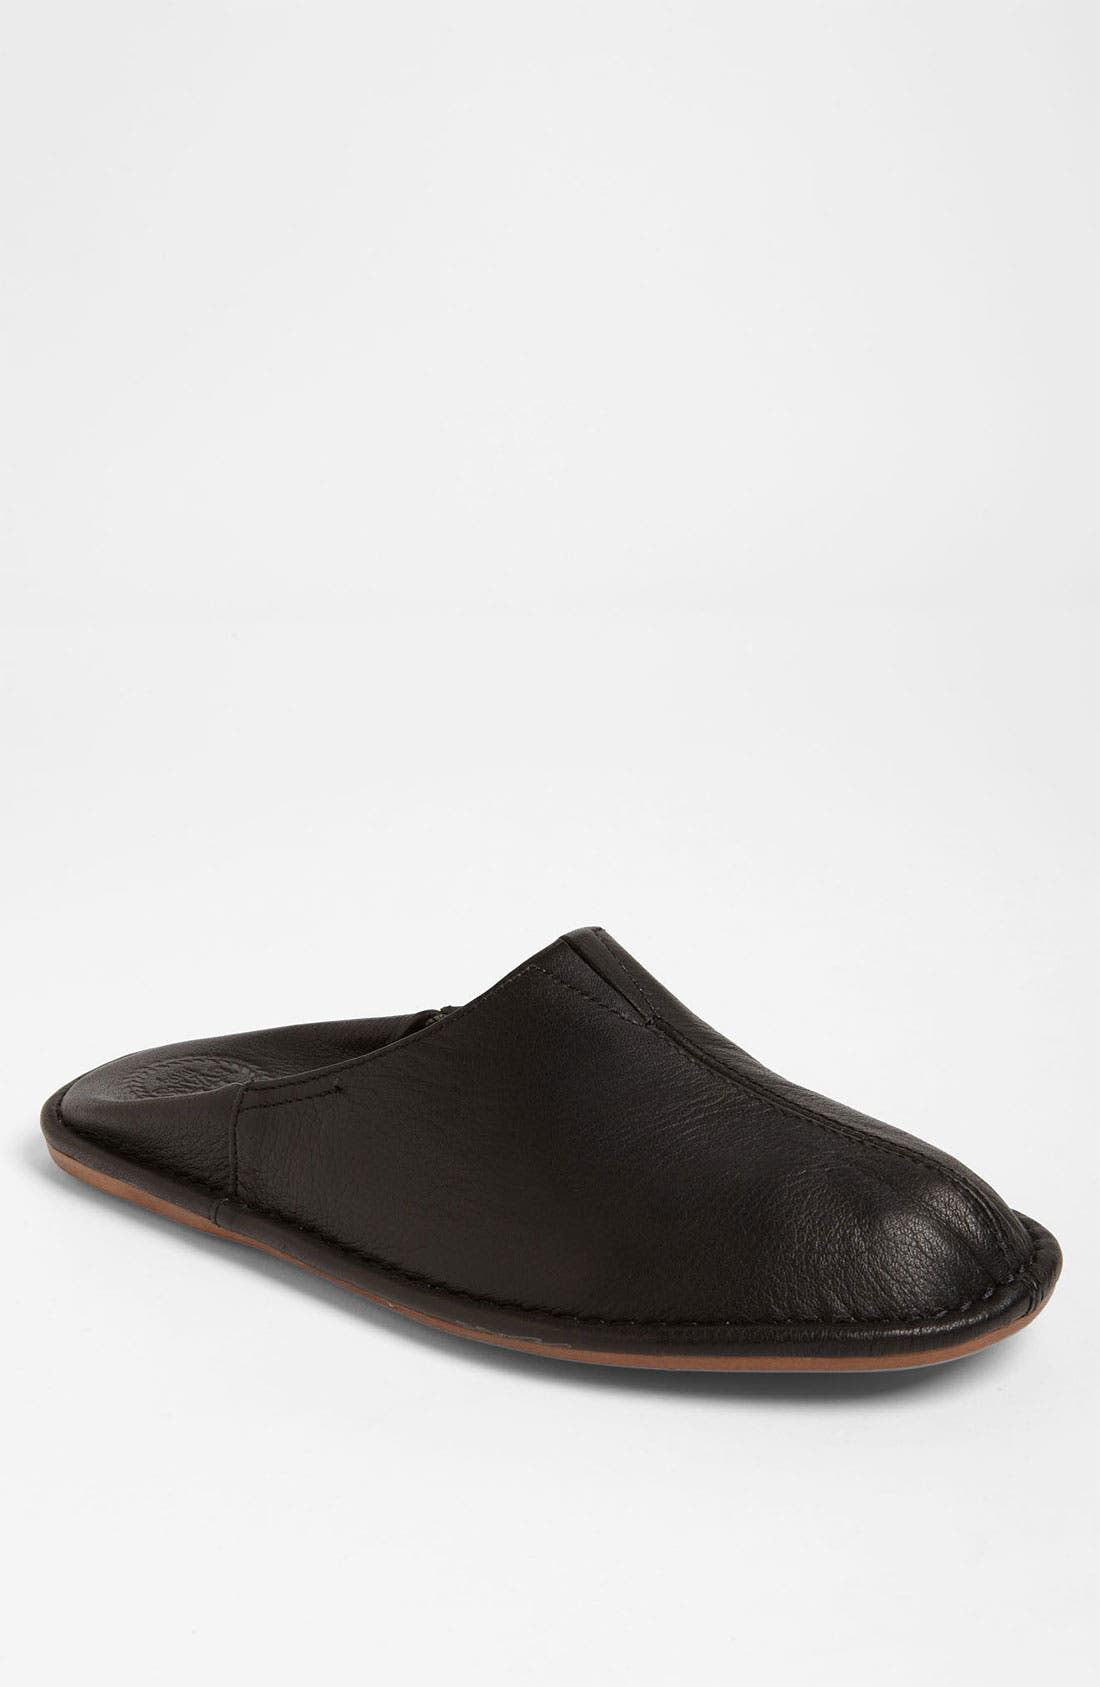 Main Image - L.B. Evans 'Pierce' Slipper (Online Only)